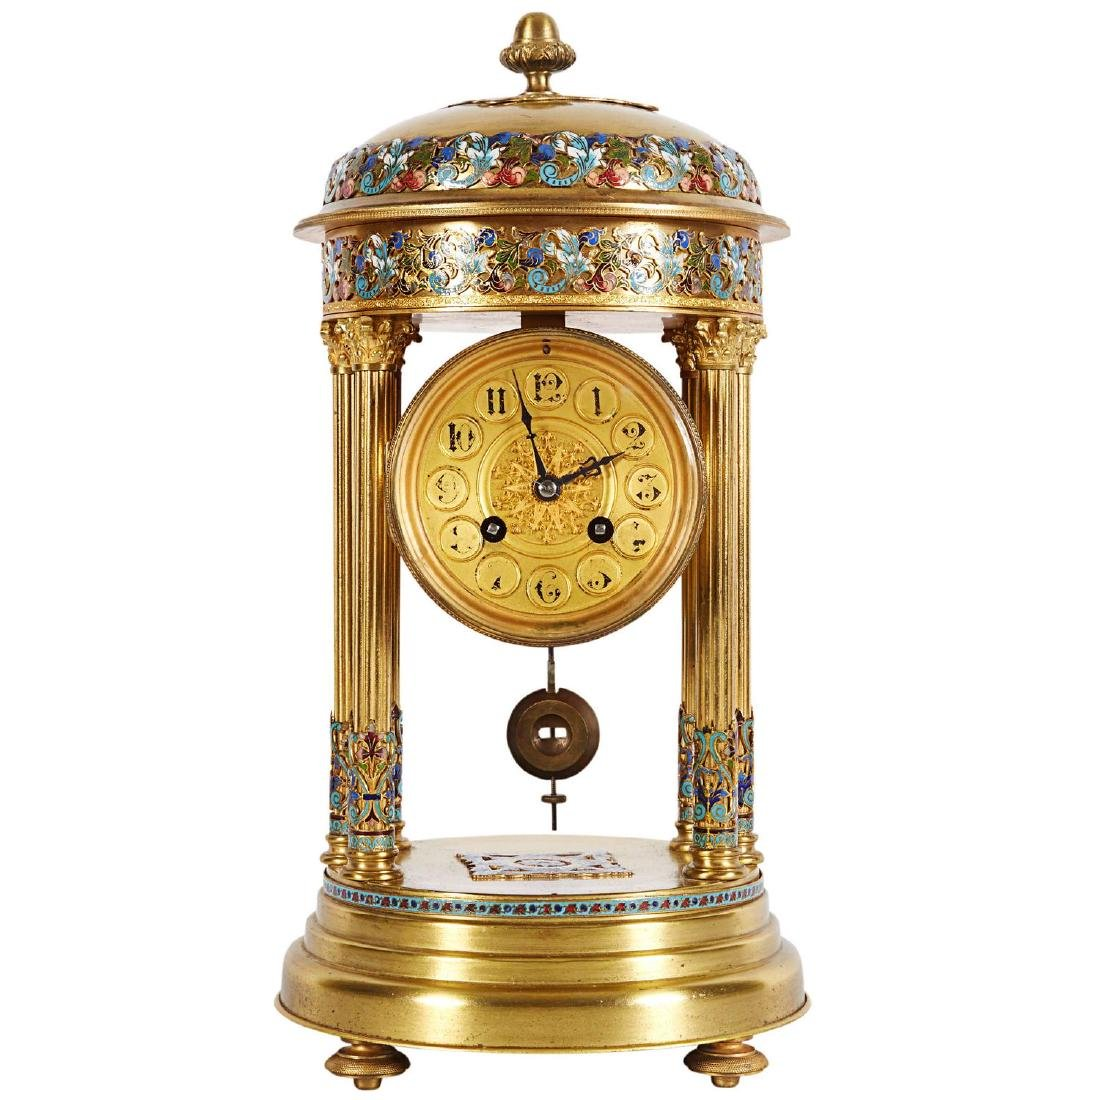 French Cloisonne/Champleve Enamel Round Mantle Clock